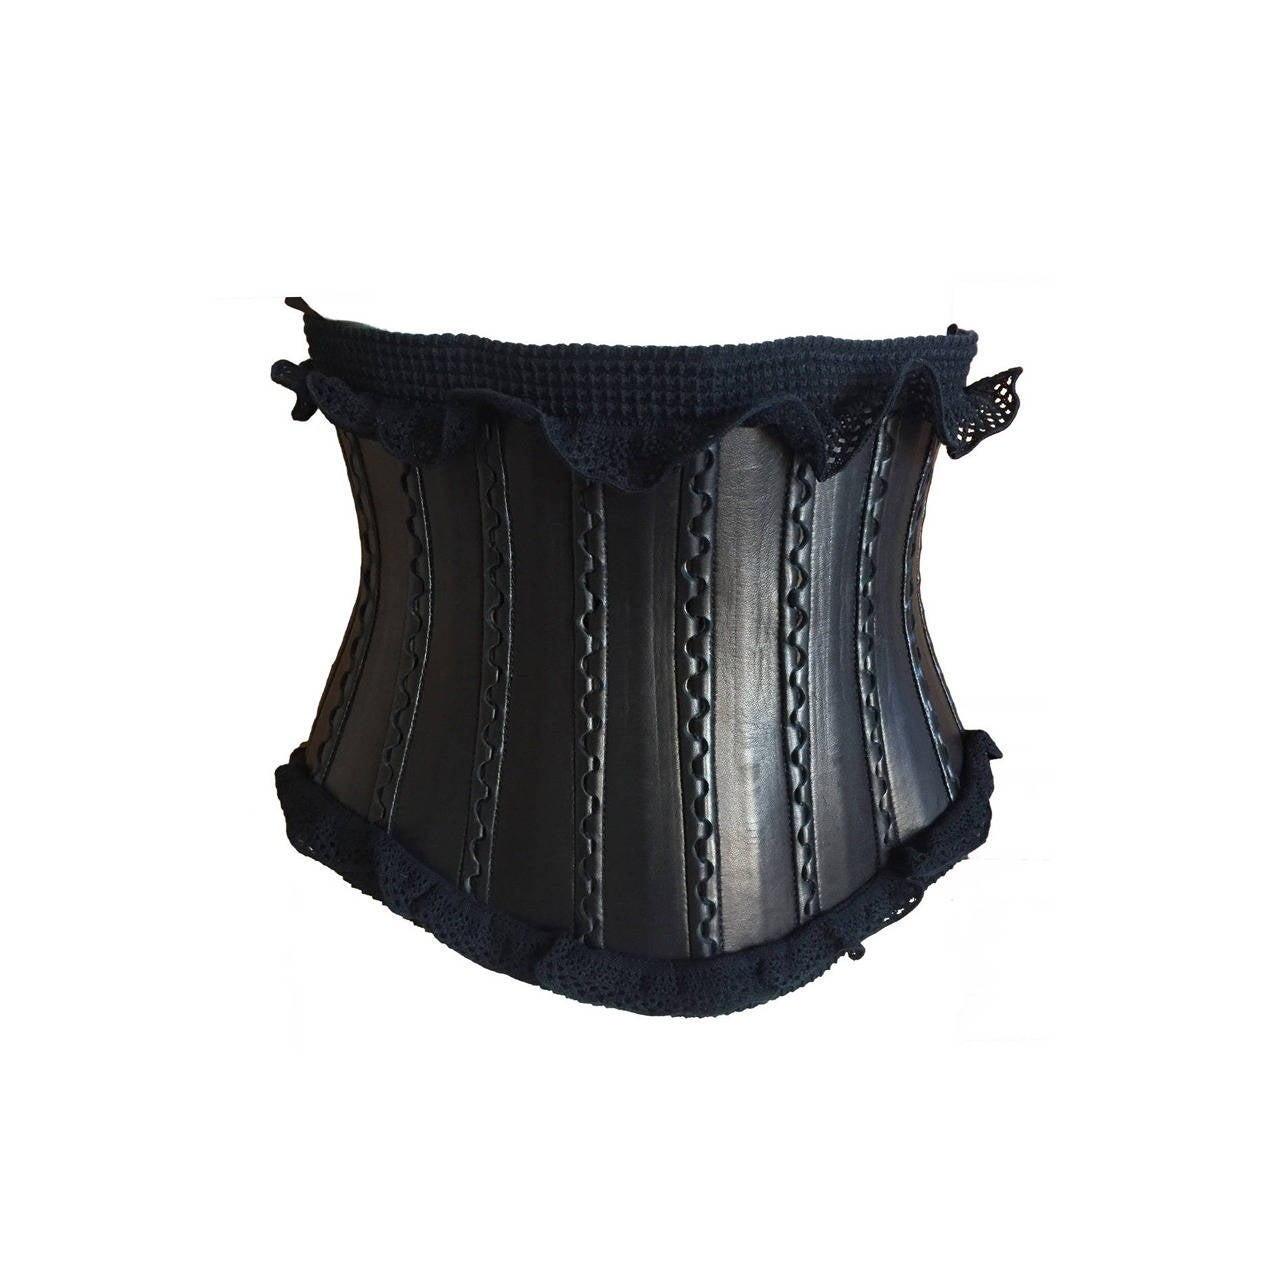 alaia wide black leather corset belt with ruffle edge at